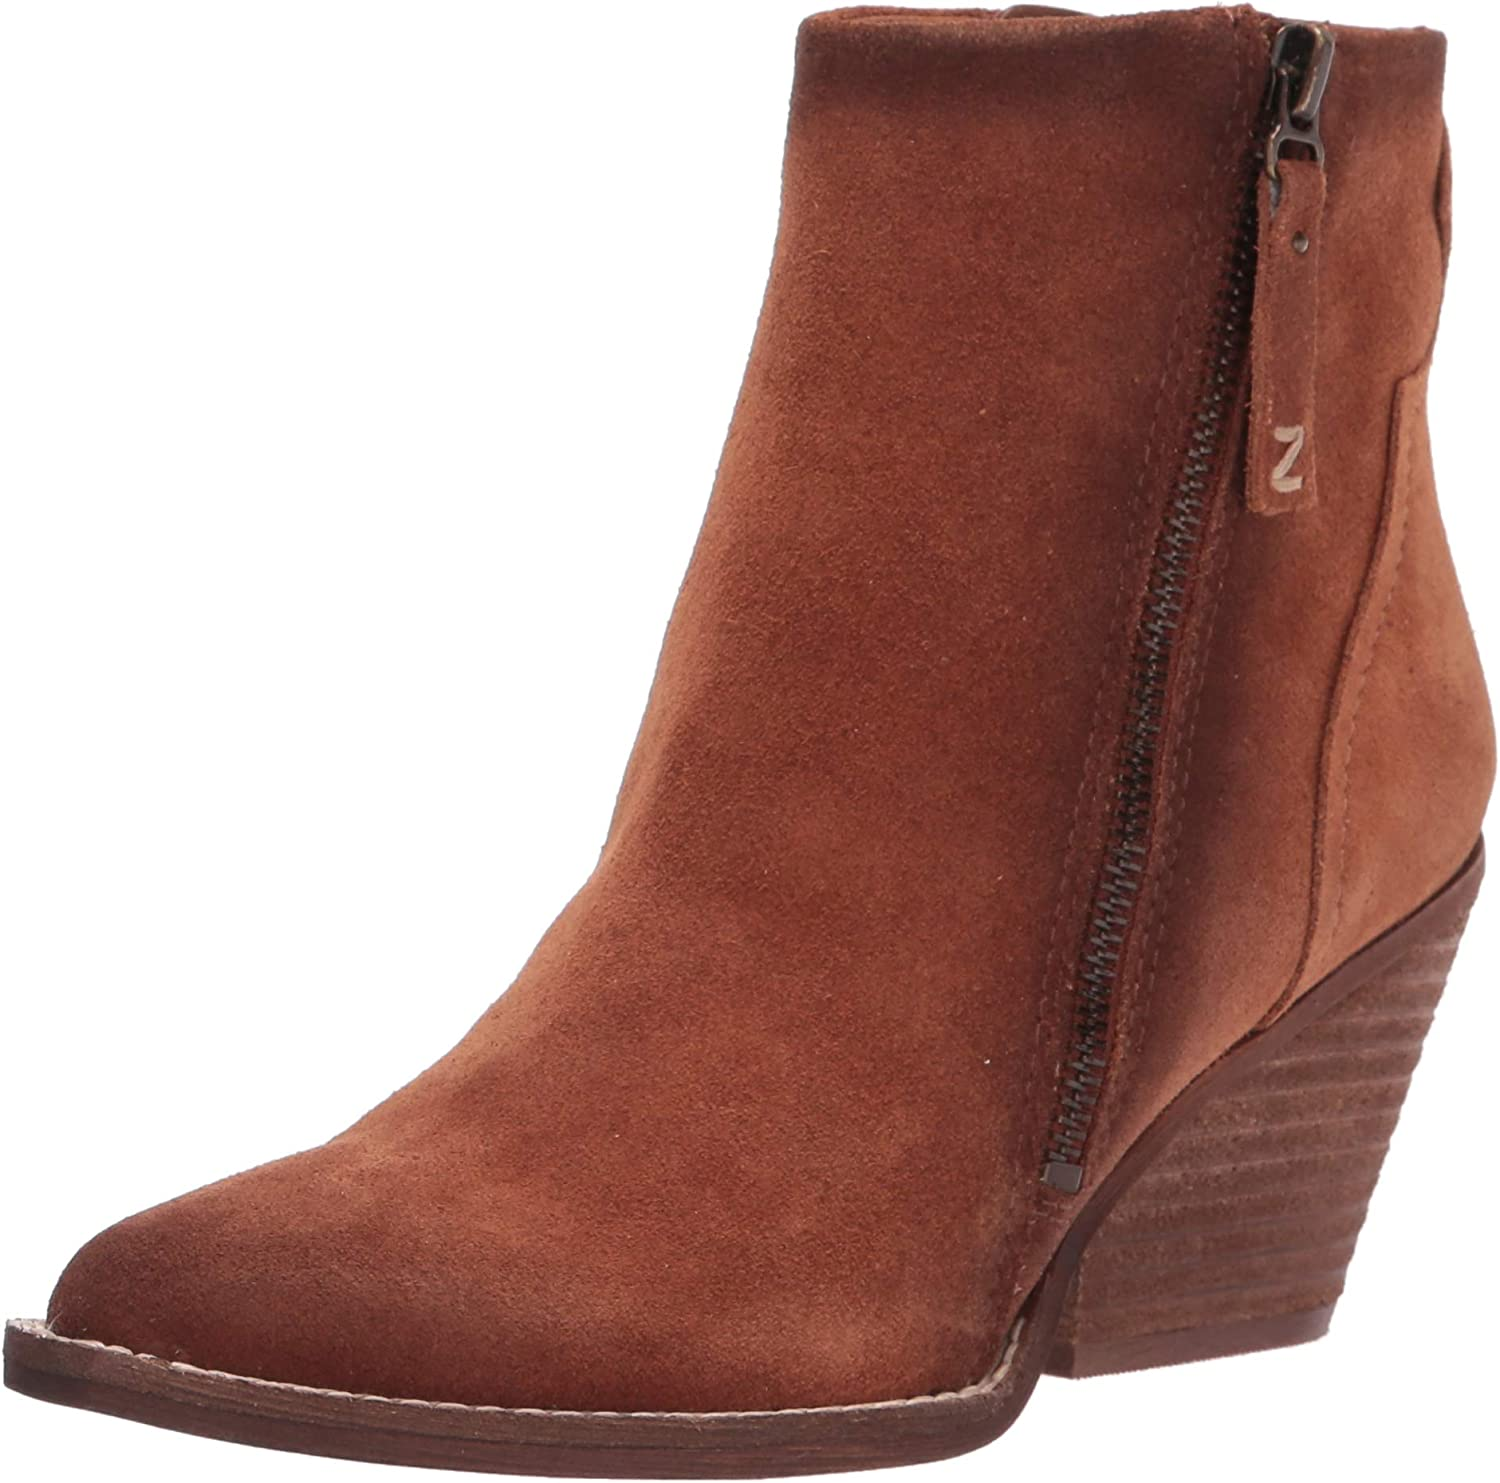 Manufacturer regenerated product Zodiac Women's Ramona Ankle Boot Sale